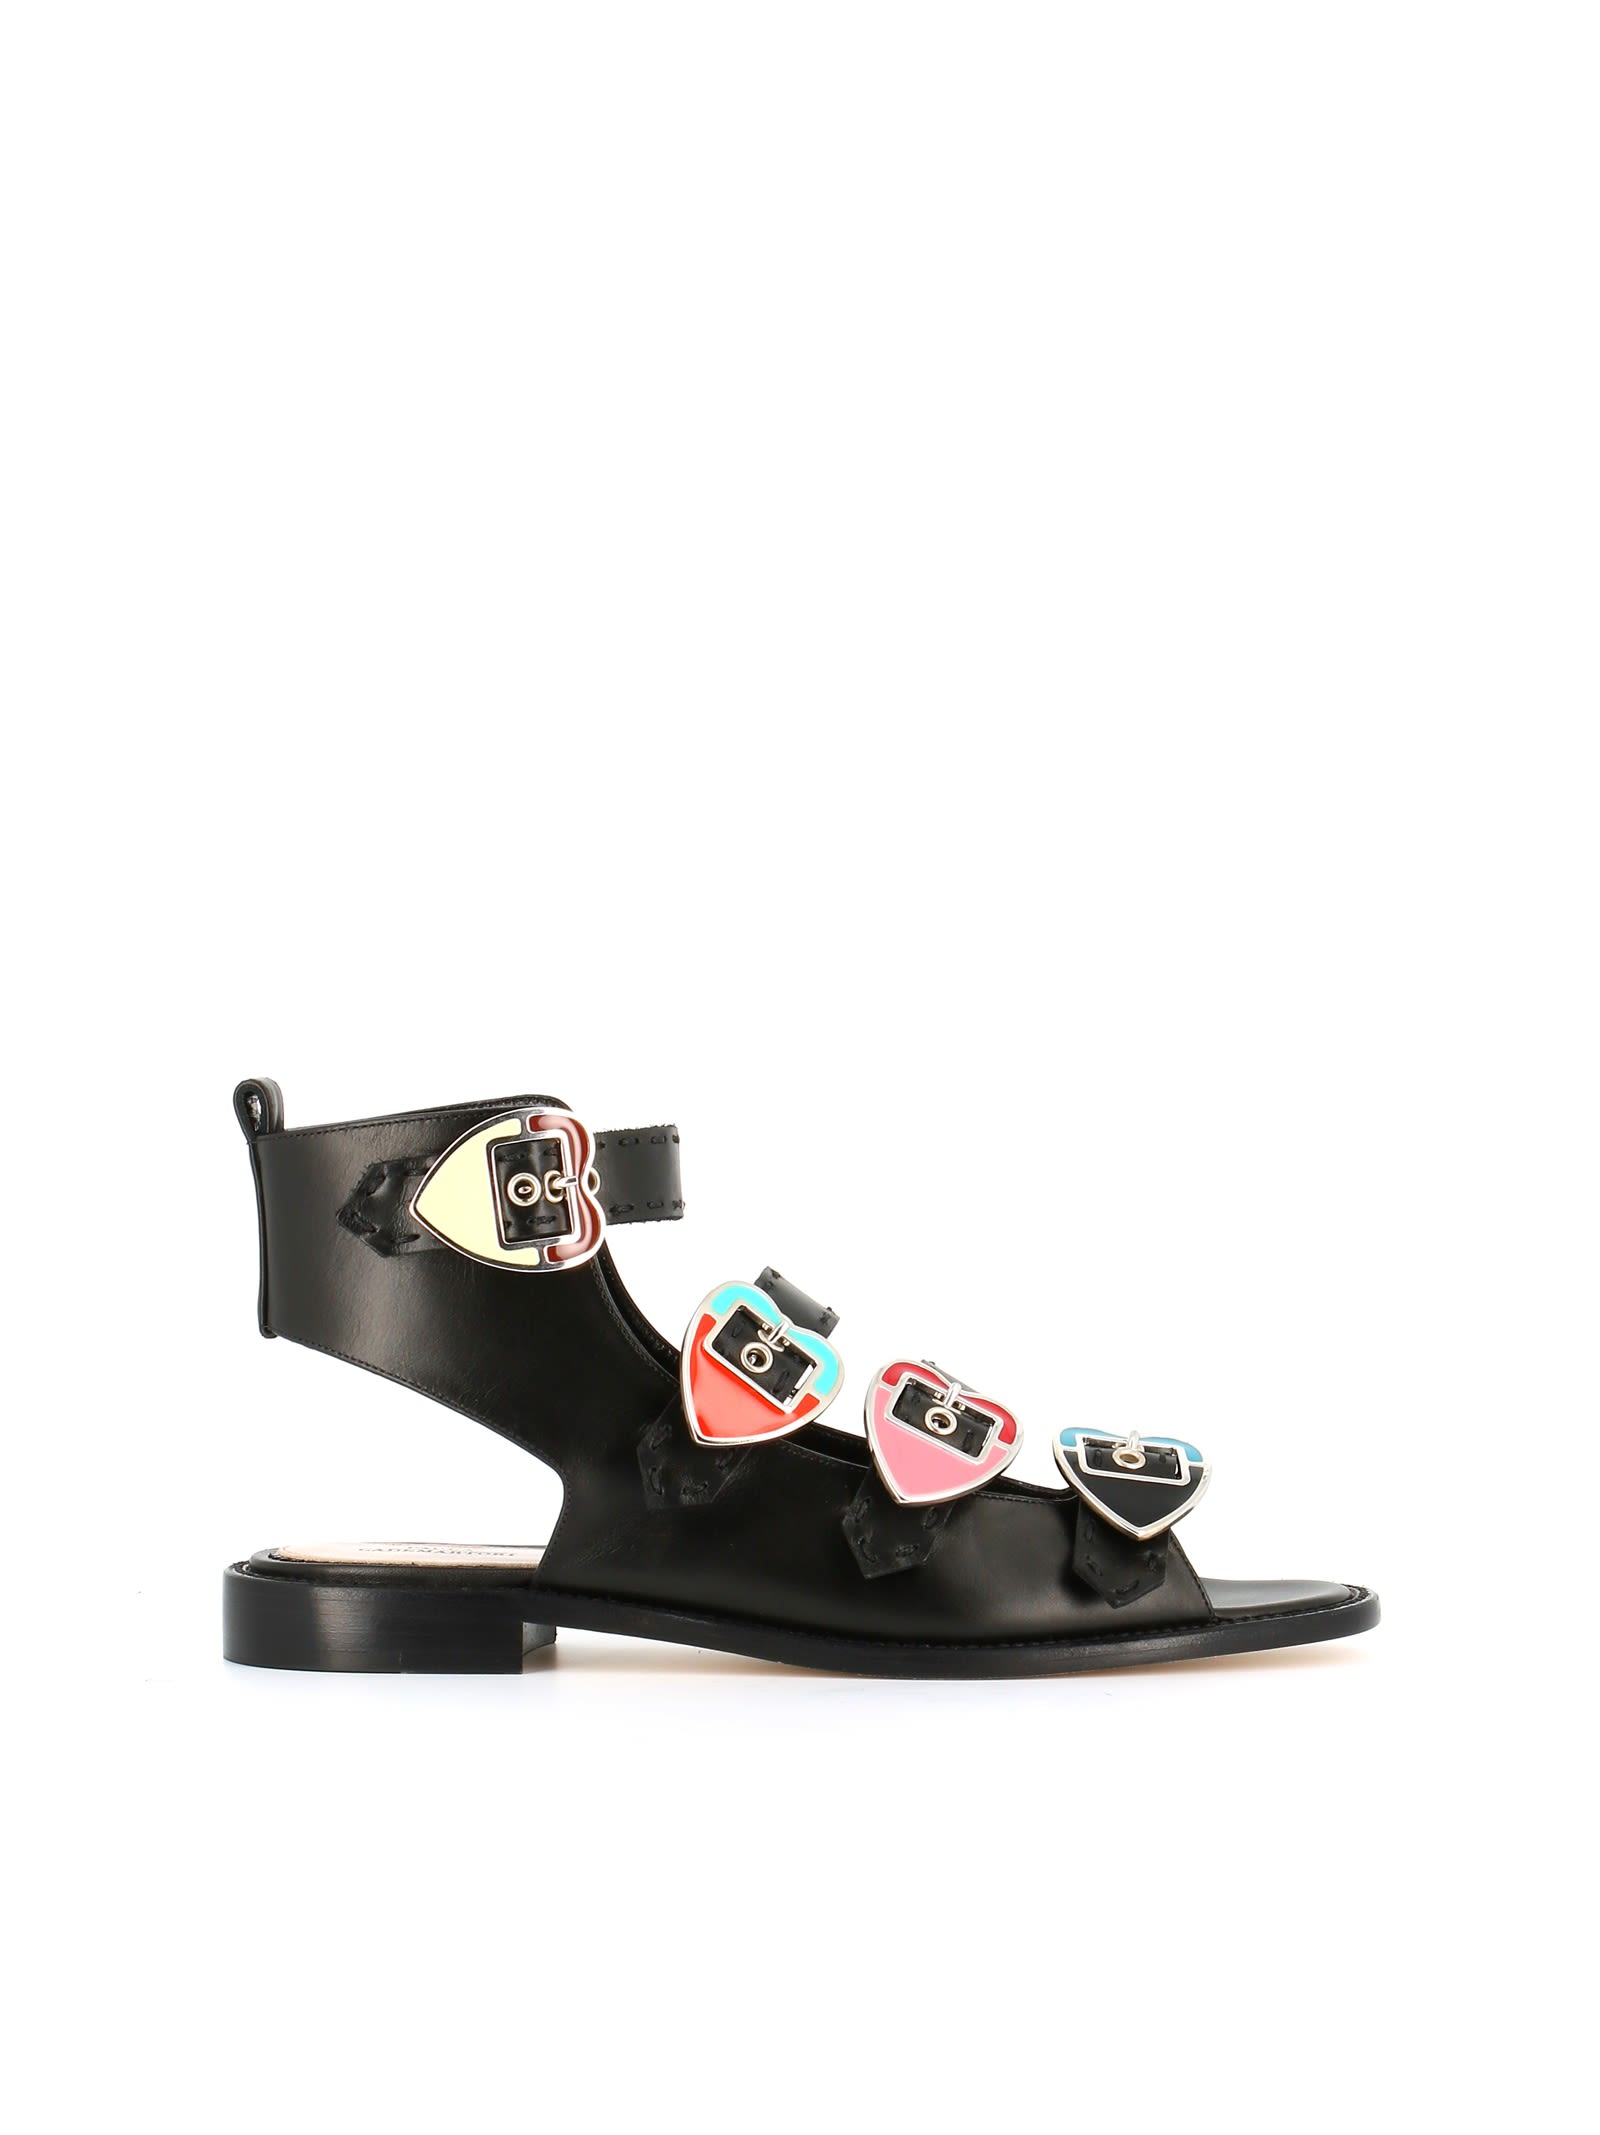 PAULA CADEMARTORI Claude sandals